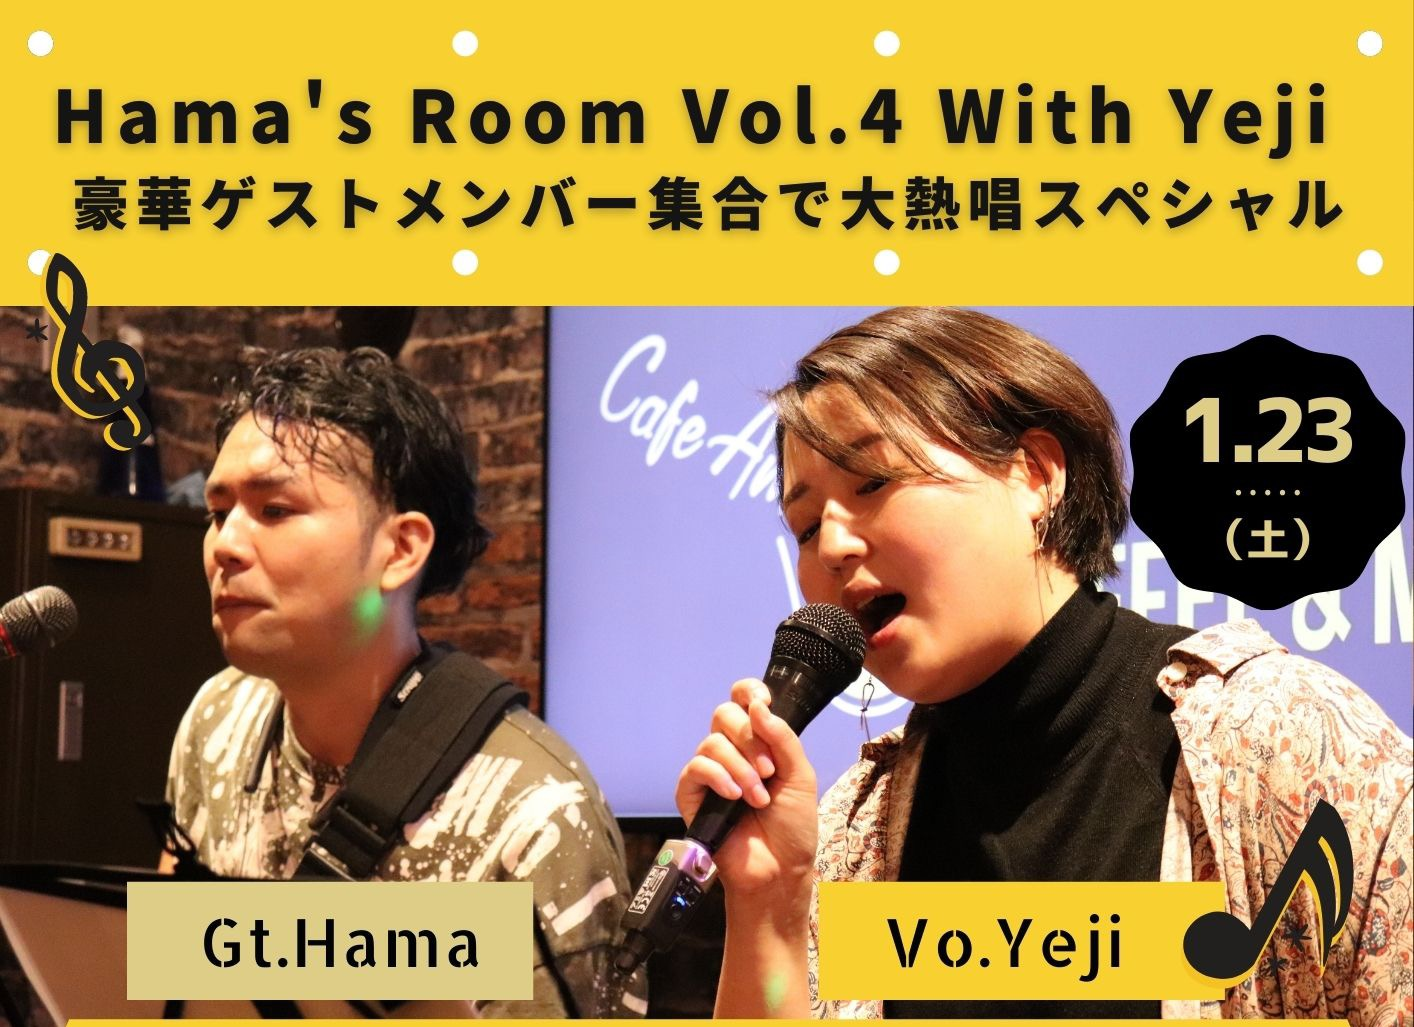 Hama's Room Vol.4 With Yeji